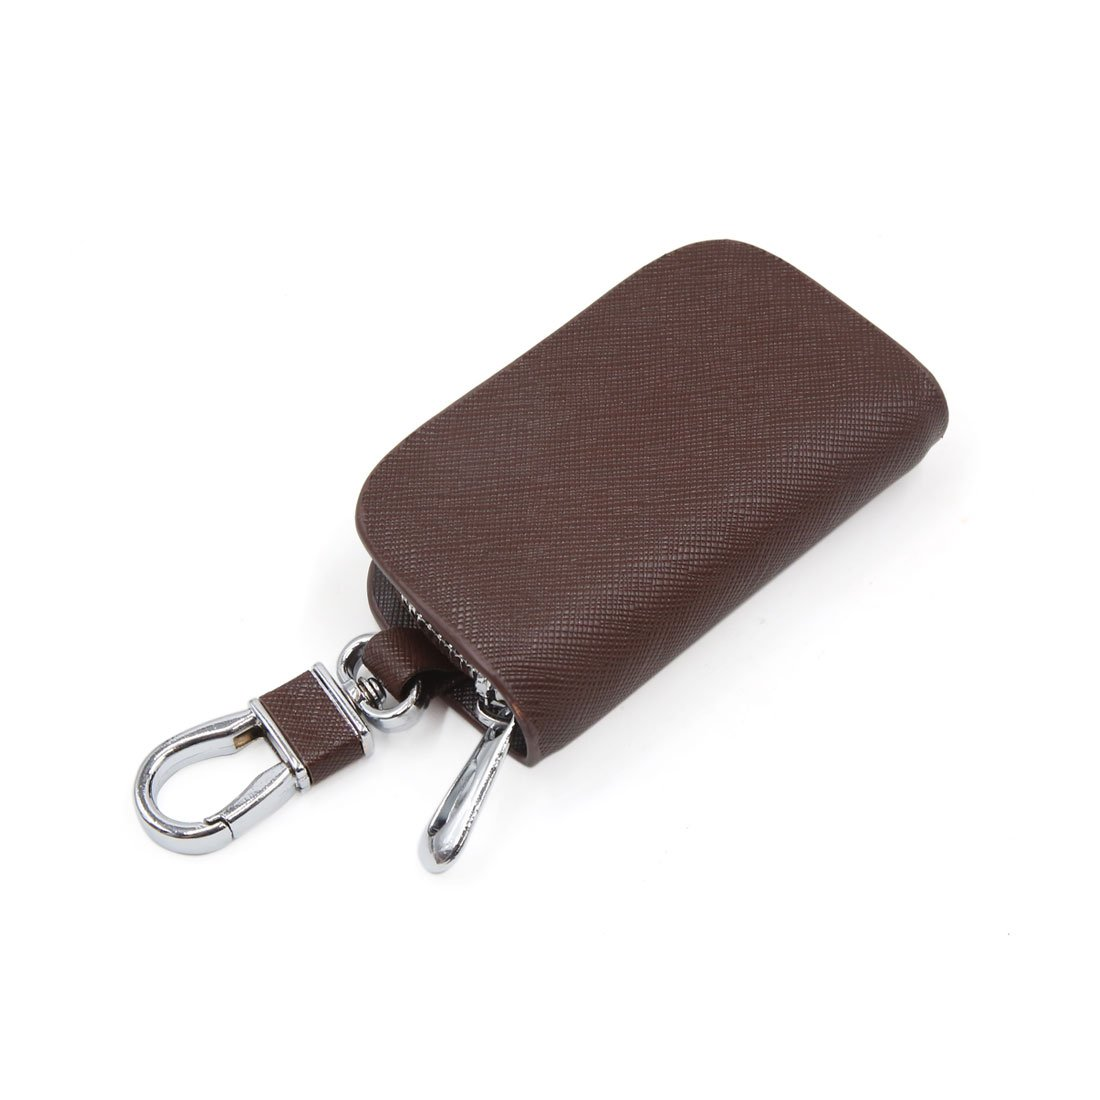 Uxcell a17030700ux0410 Car Key Holder